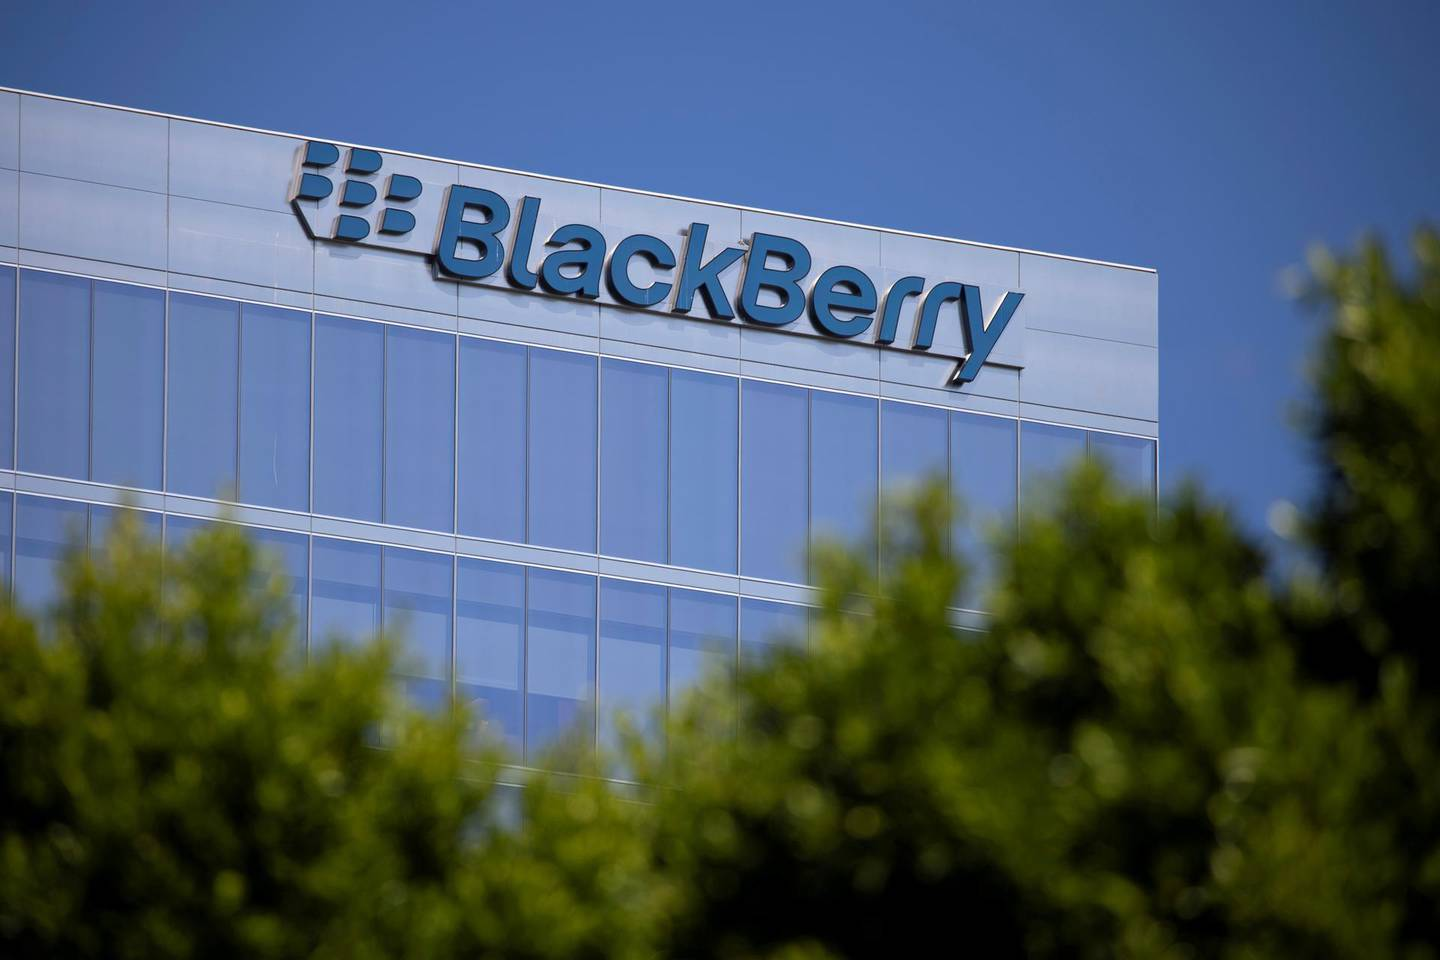 FILE PHOTO: The Blackberry logo is shown on a office  tower in Irvine, California, U.S., October 20, 2020.  REUTERS/Mike Blake/File Photo